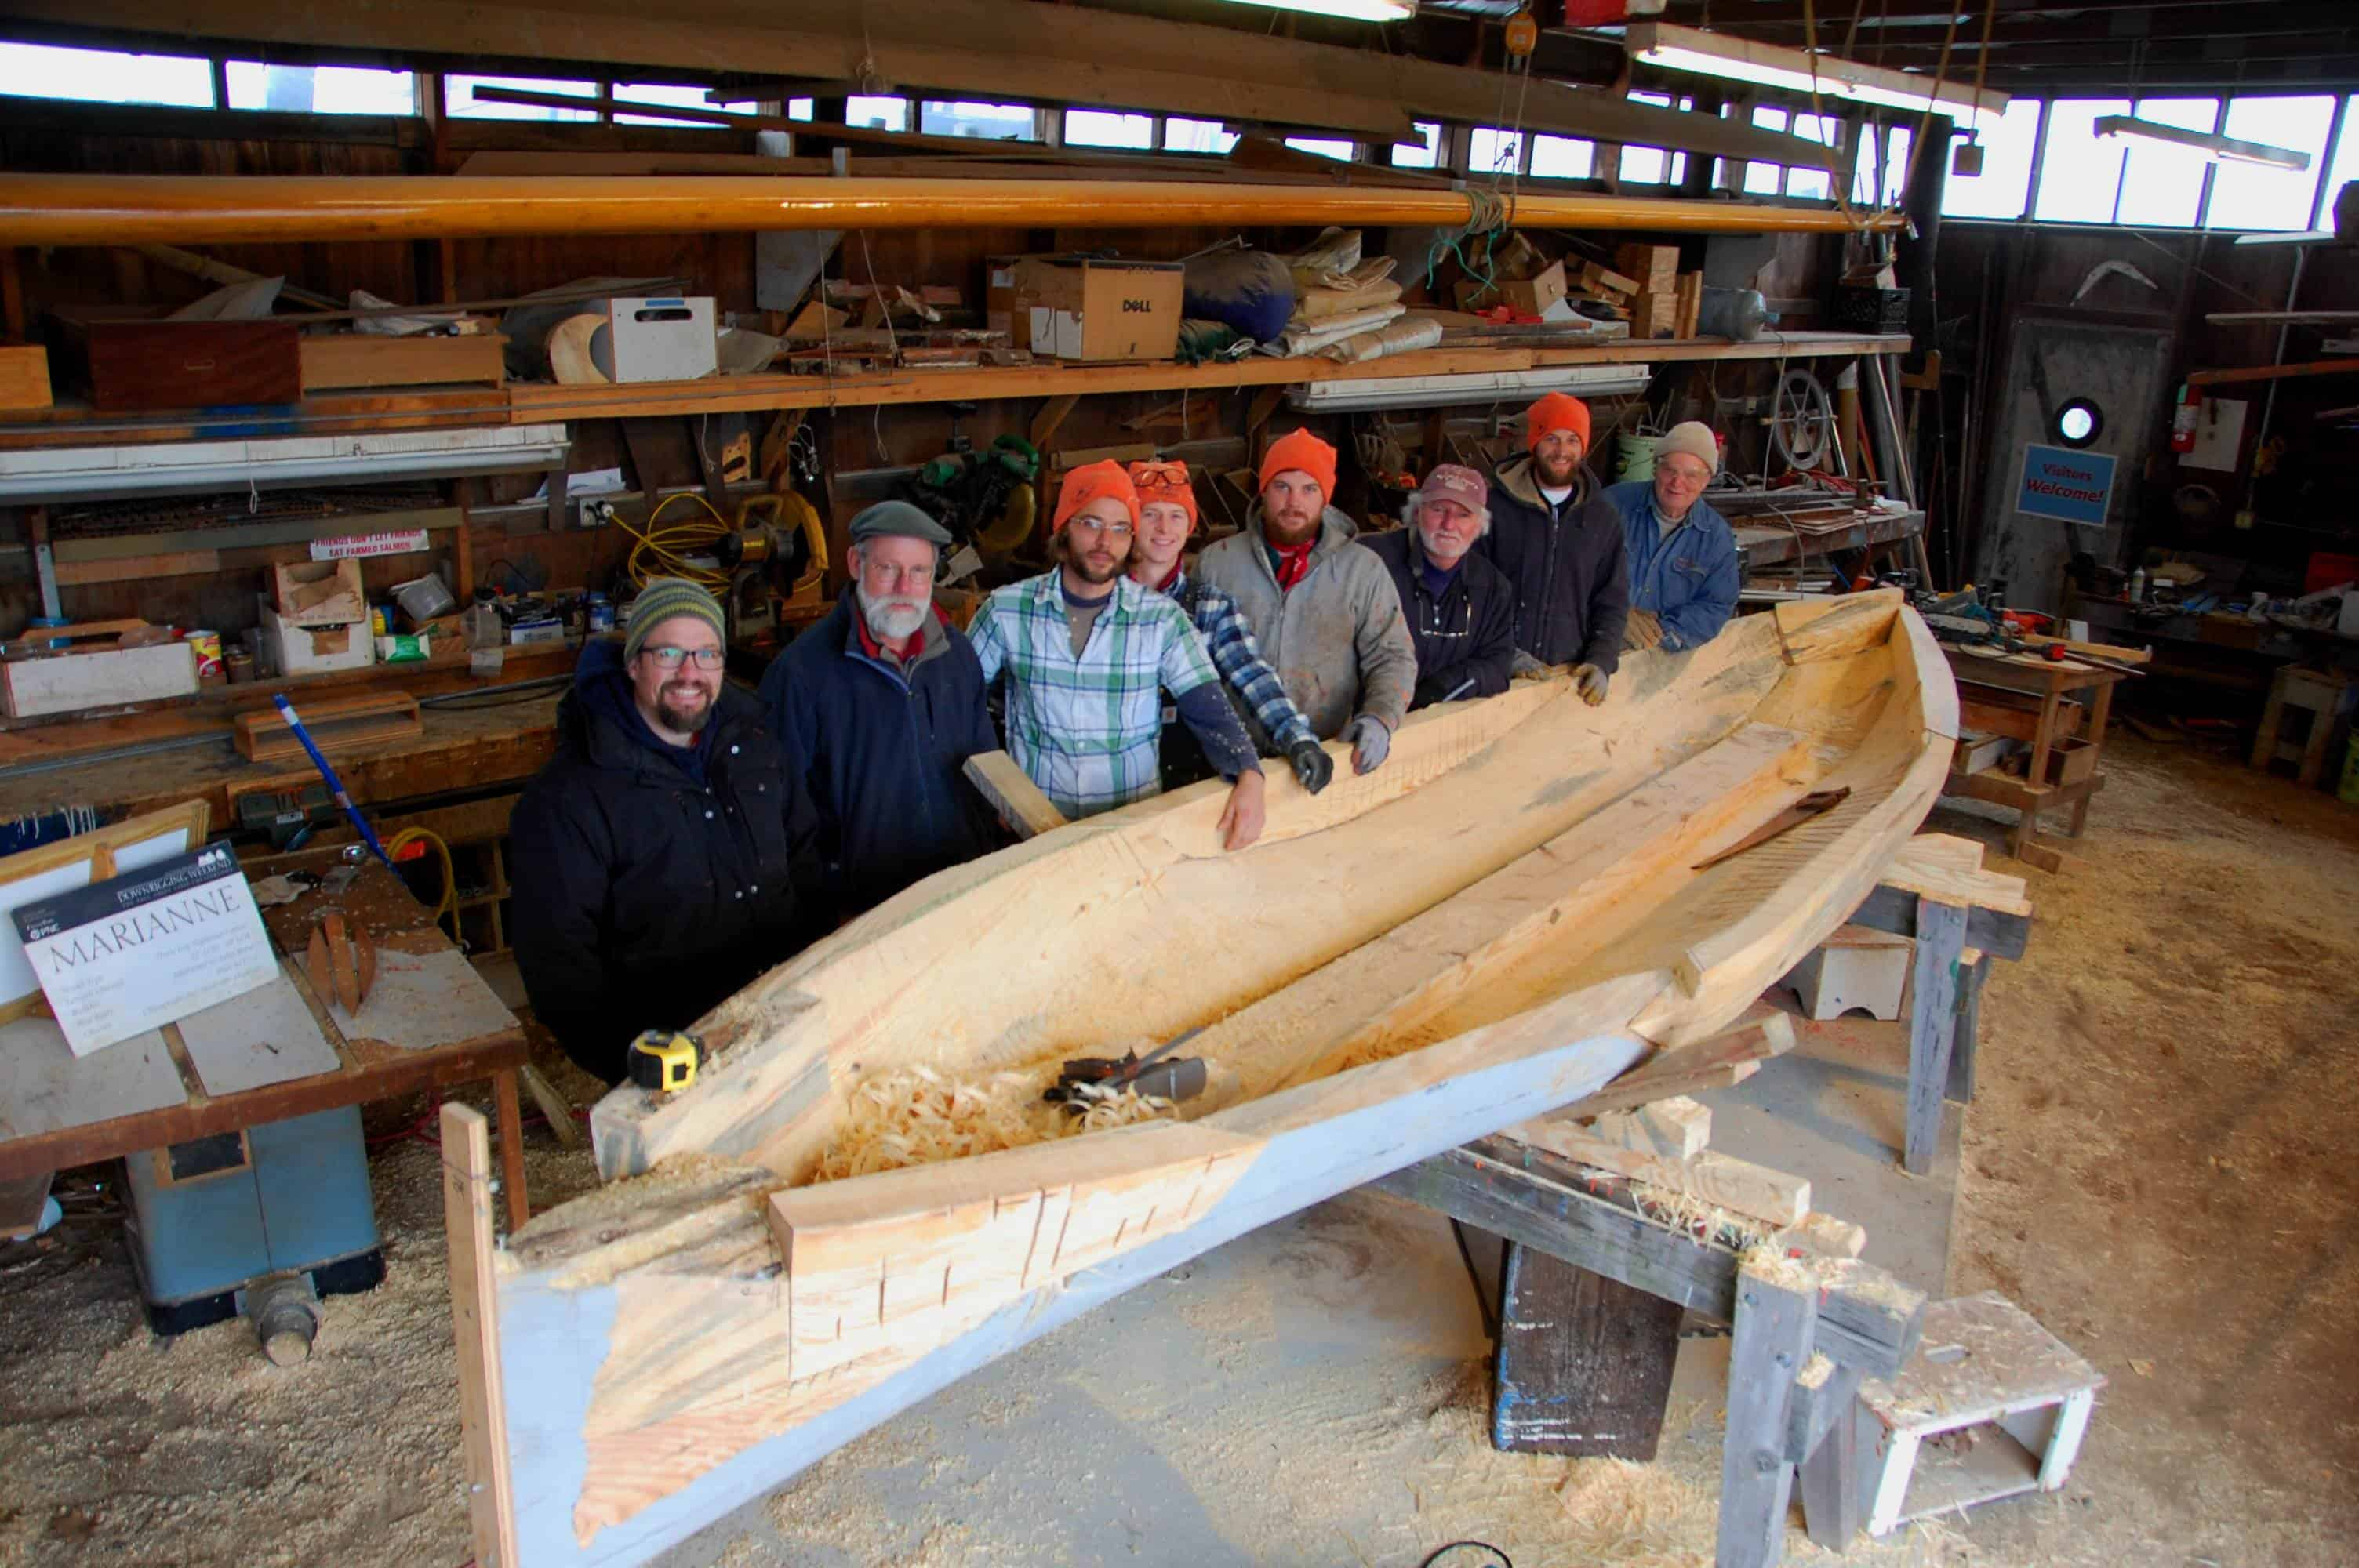 Chesapeake Bay Maritime Museum shipwrights, apprentices, and volunteers take a break from building a new log canoe at the museum in St. Michaels, MD. Pictured, from left: Apprentice Brooke Ricketts; Assistant Curator of Watercraft Rich Scofield; Apprentices James DelAguila and Chris Baden; Boatshop Manager Michael Gorman; Volunteer Mike Corliss; Vessel Maintenance Assistant Joe Connor; and Volunteer Cliff Stretmater.